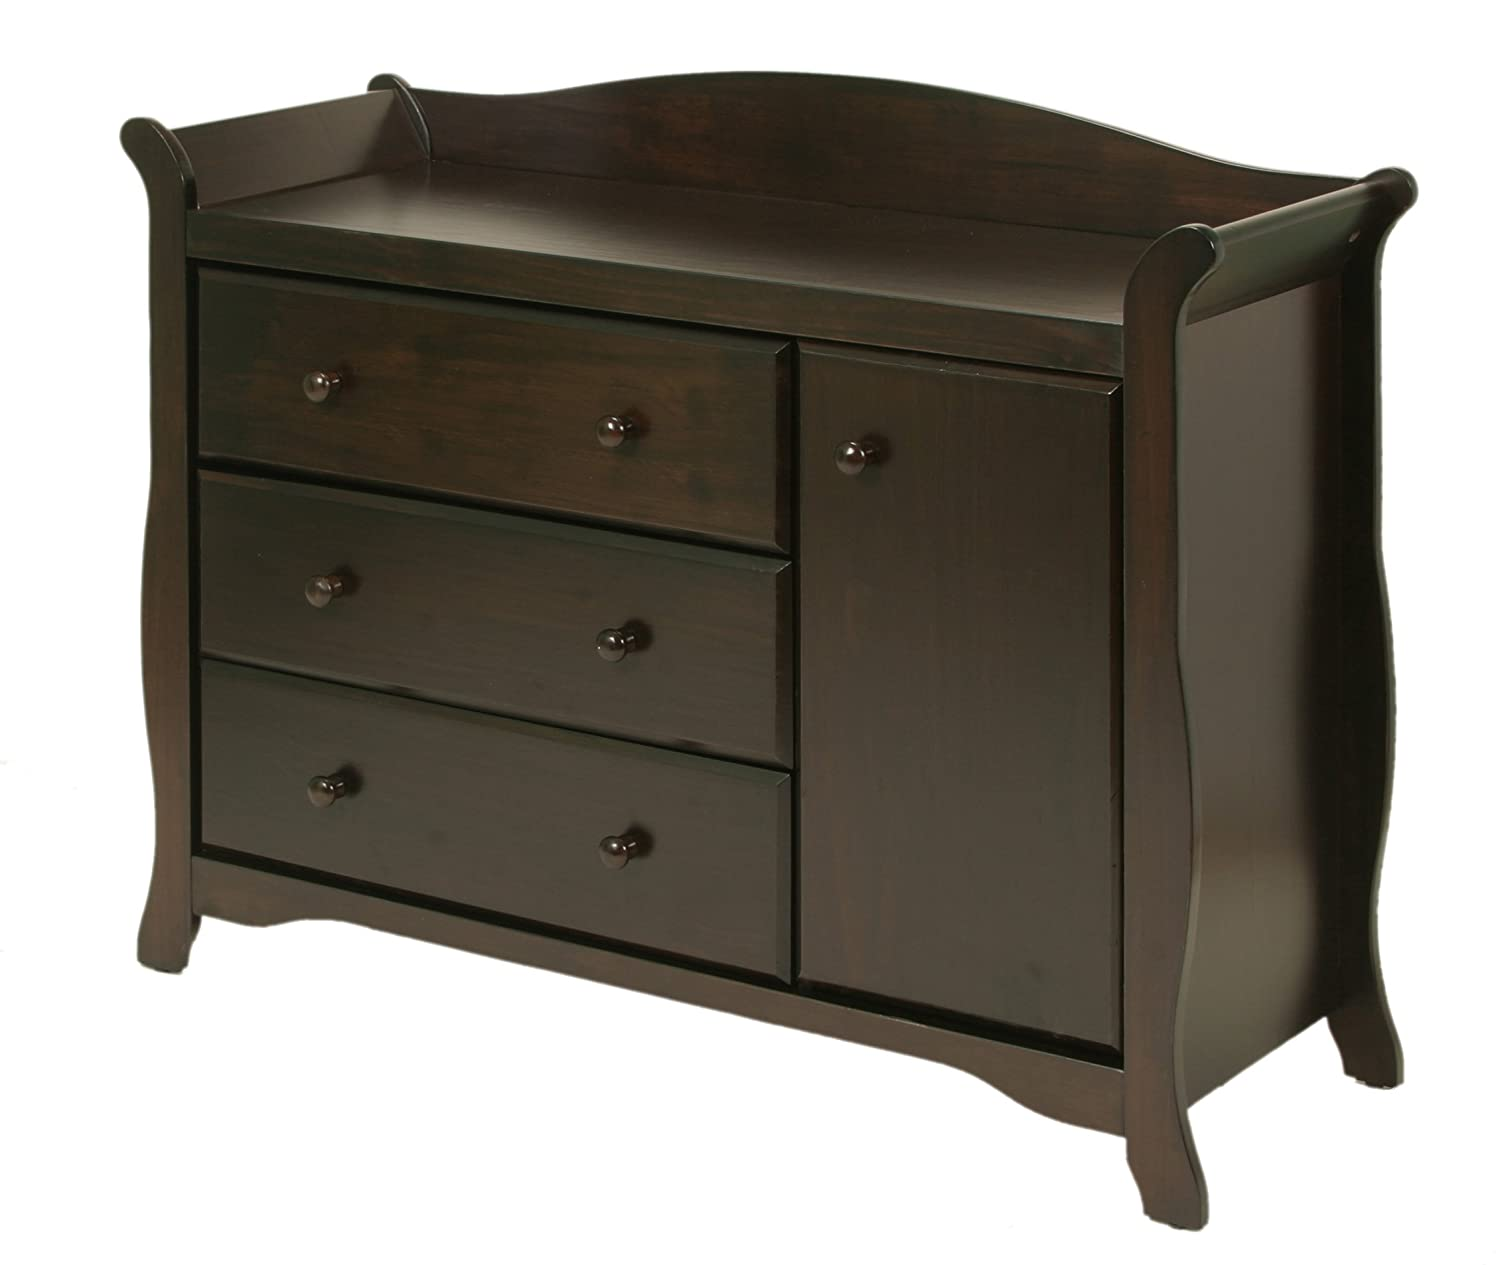 Swell Storkcraft Aspen Combo Dresser Chest Espresso Older Version Discontinued By Manufacturer Home Remodeling Inspirations Cosmcuboardxyz